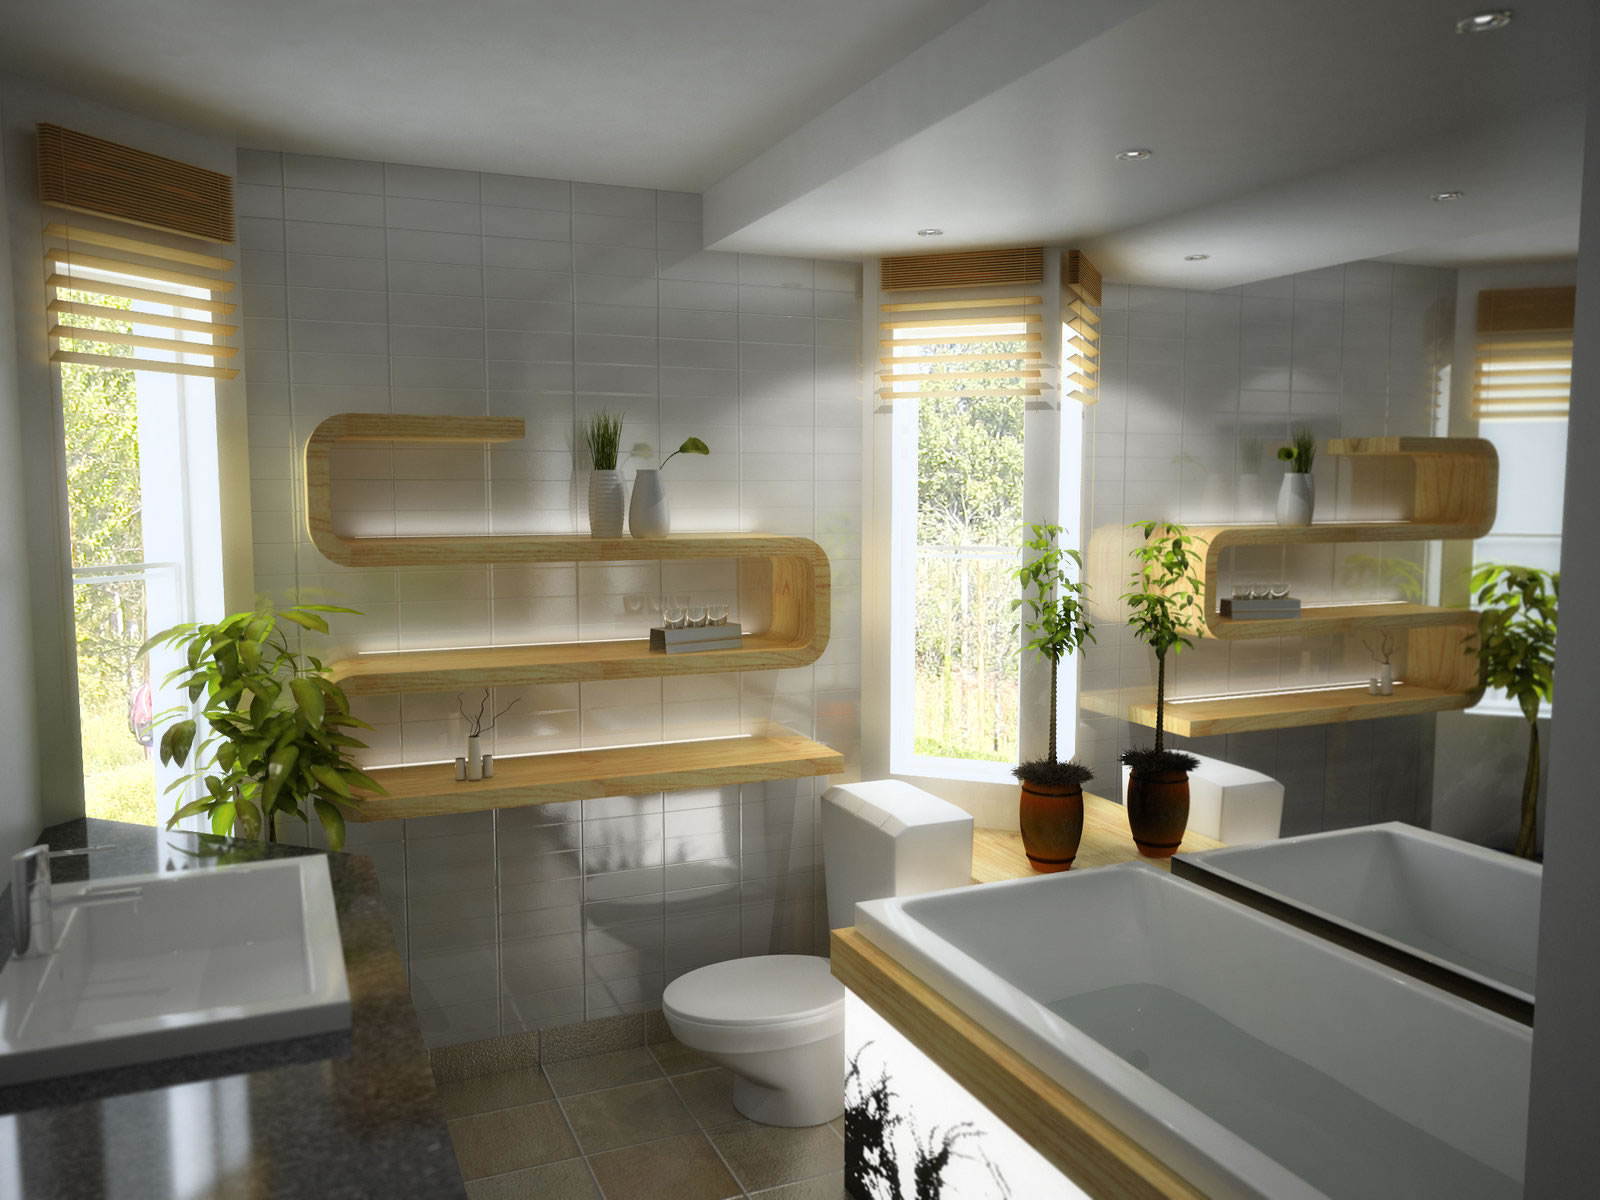 VD7 Modern Bathroom